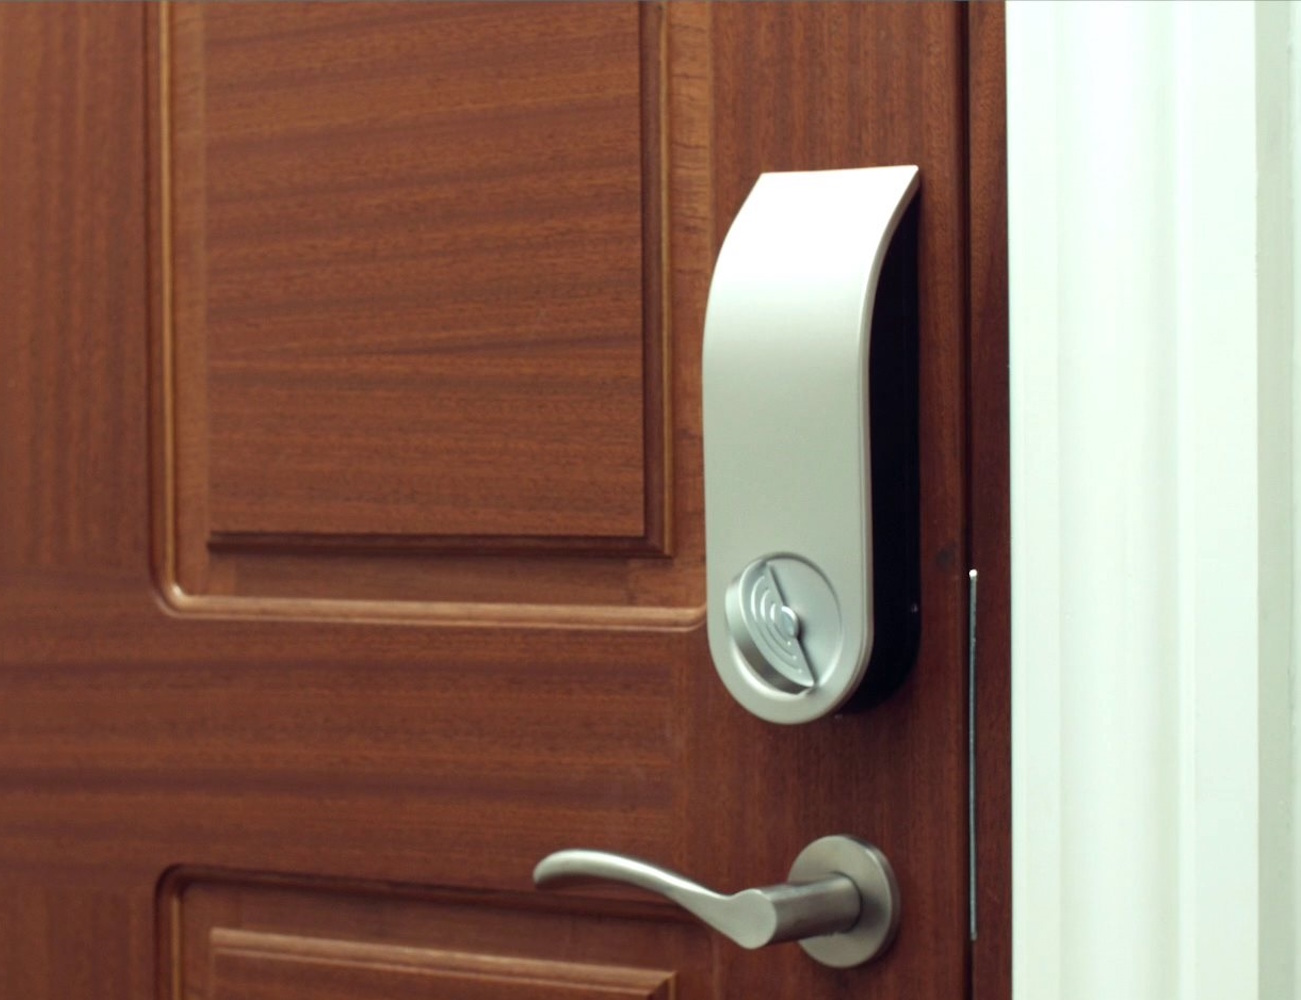 app-enabled-smart-door-lock-by-bekey-03